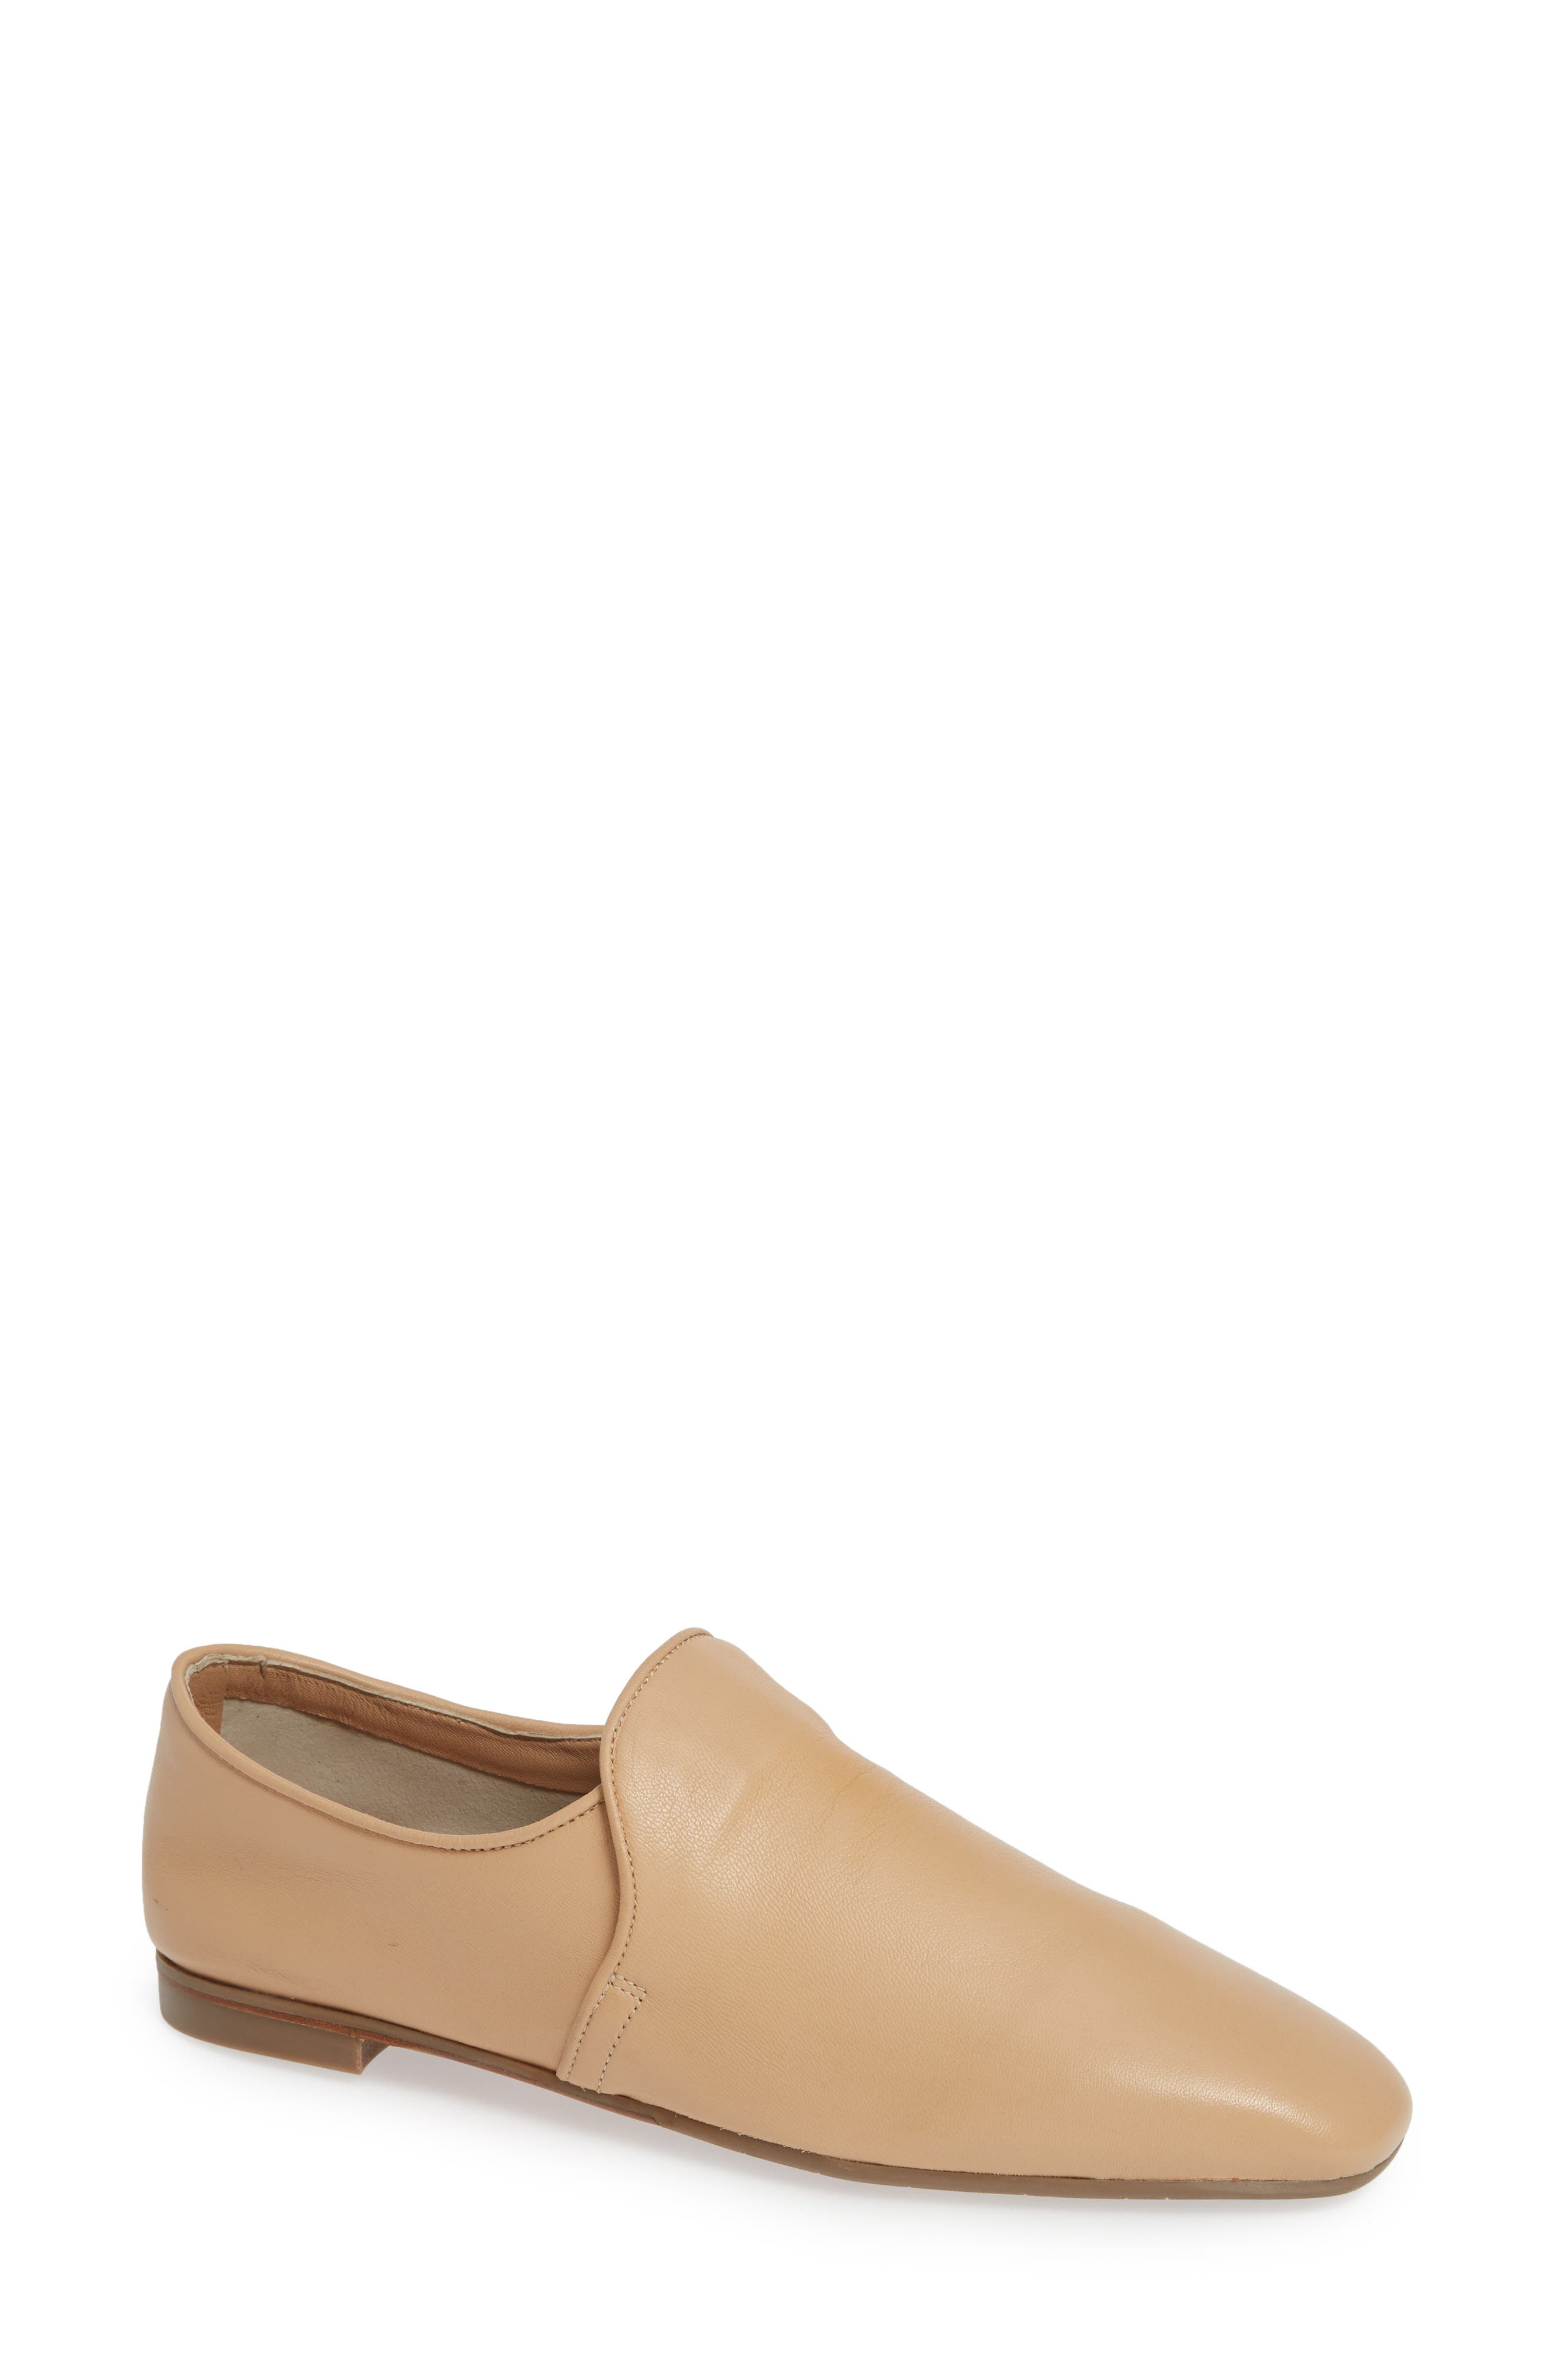 AQUATALIA Revy Weatherporoof Loafer, Main, color, NUDE NAPPA